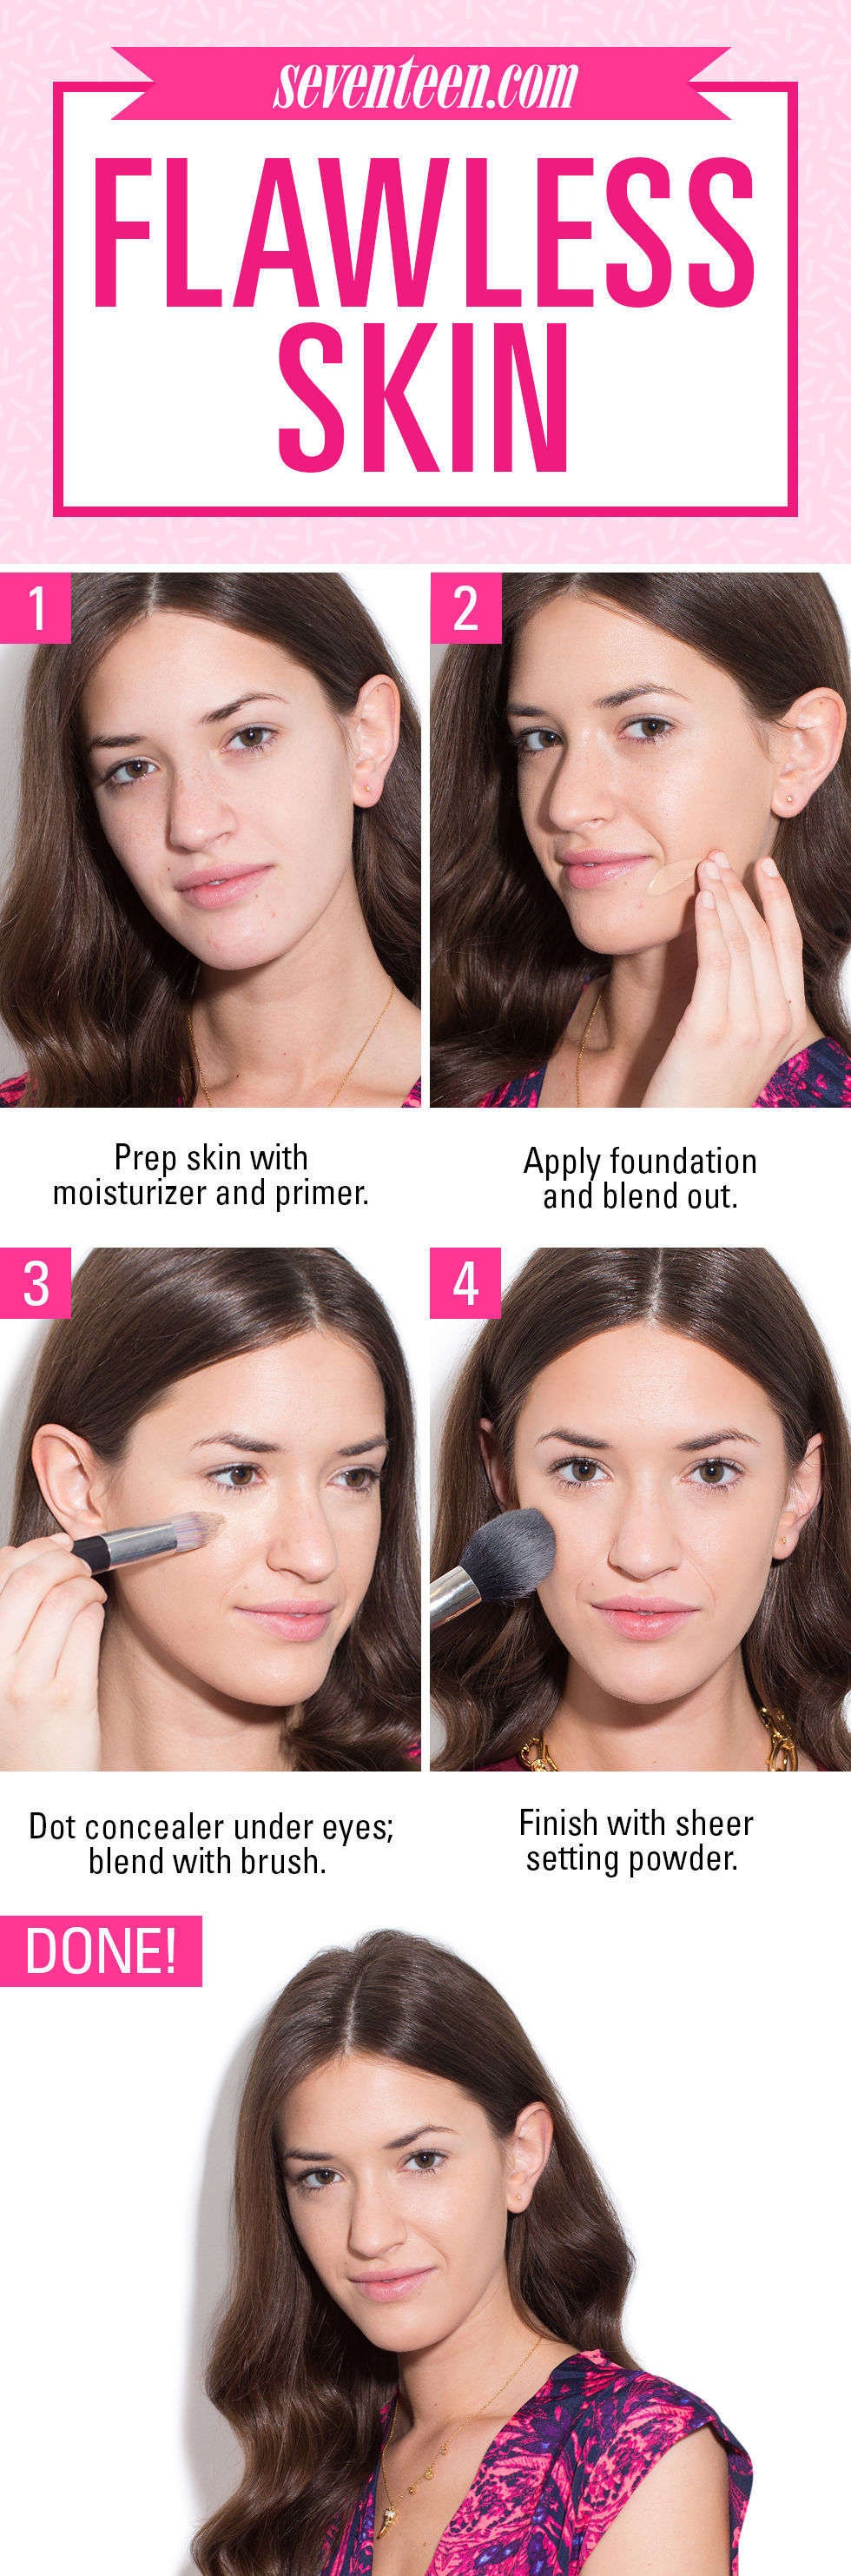 Watch 21 Cool and Trendy Makeup Ideas for Spring video